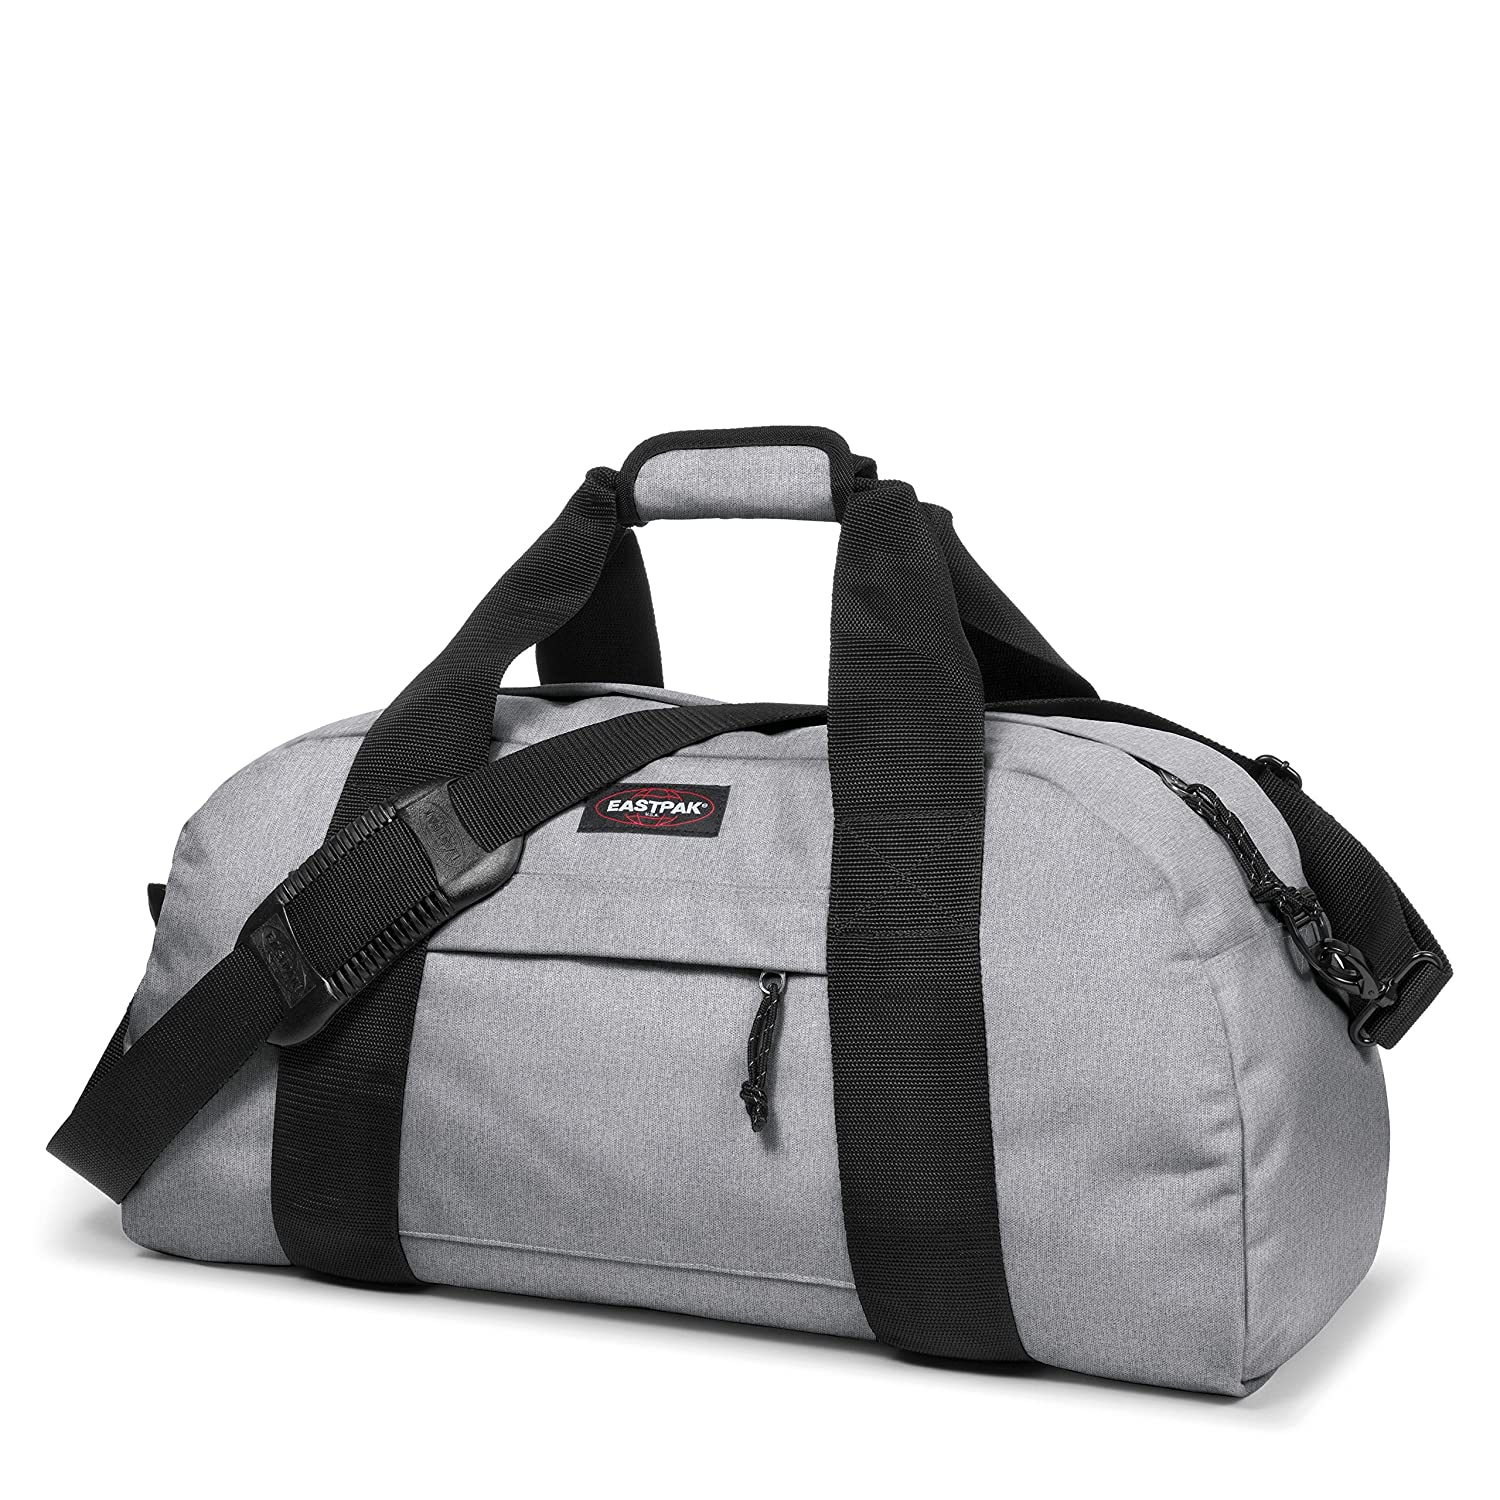 Eastpak Bags Station Holdall Sunday Grey Padded Pakamp039r Backpack Quilt Sports Outdoors